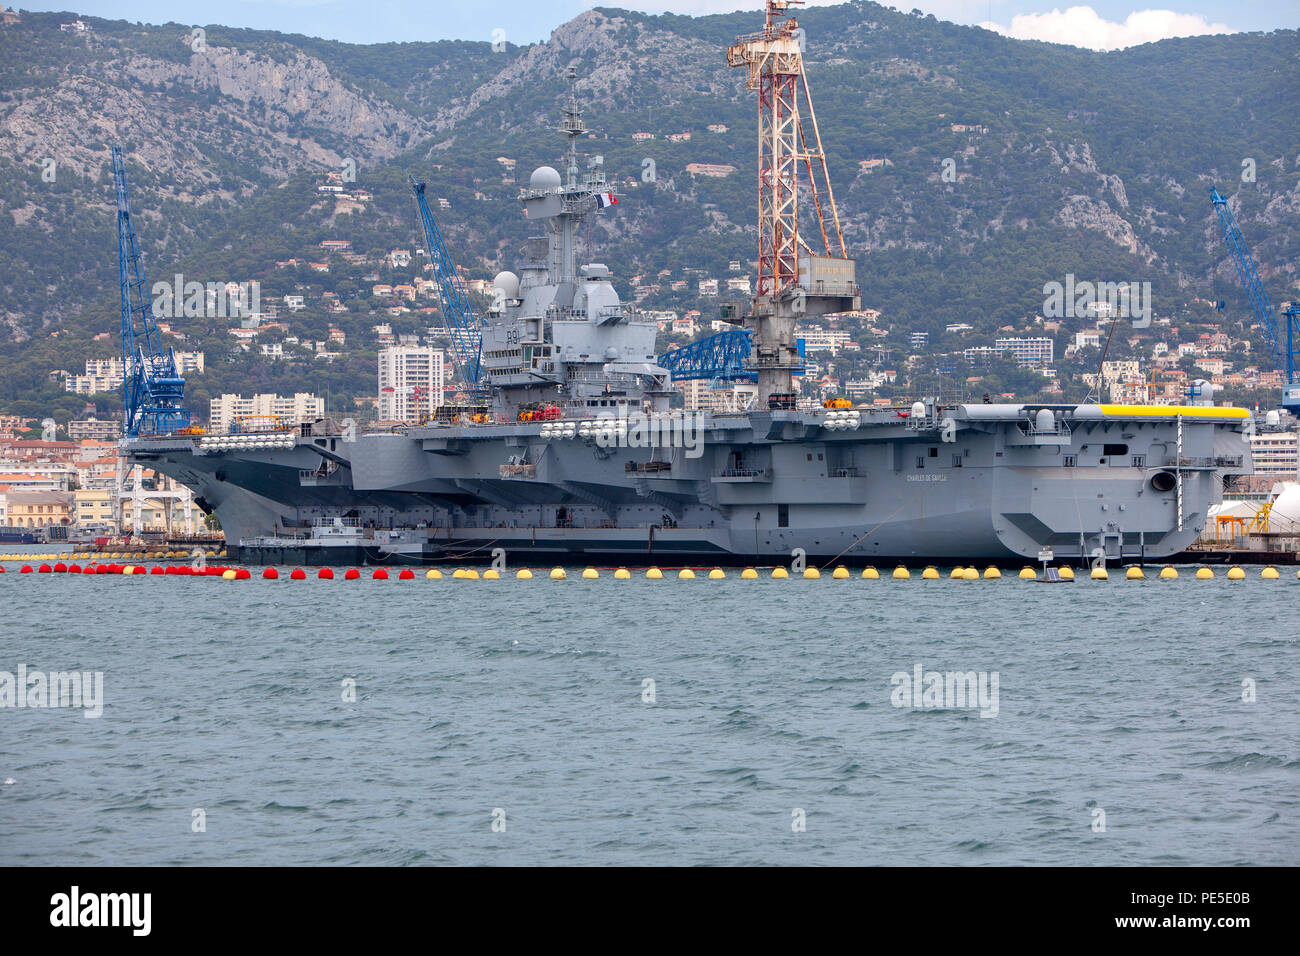 Charles de Gaulle aircraft carrier R91 Flagship of the French Navy docked at the major French naval base in Toulon in southern France - Stock Image